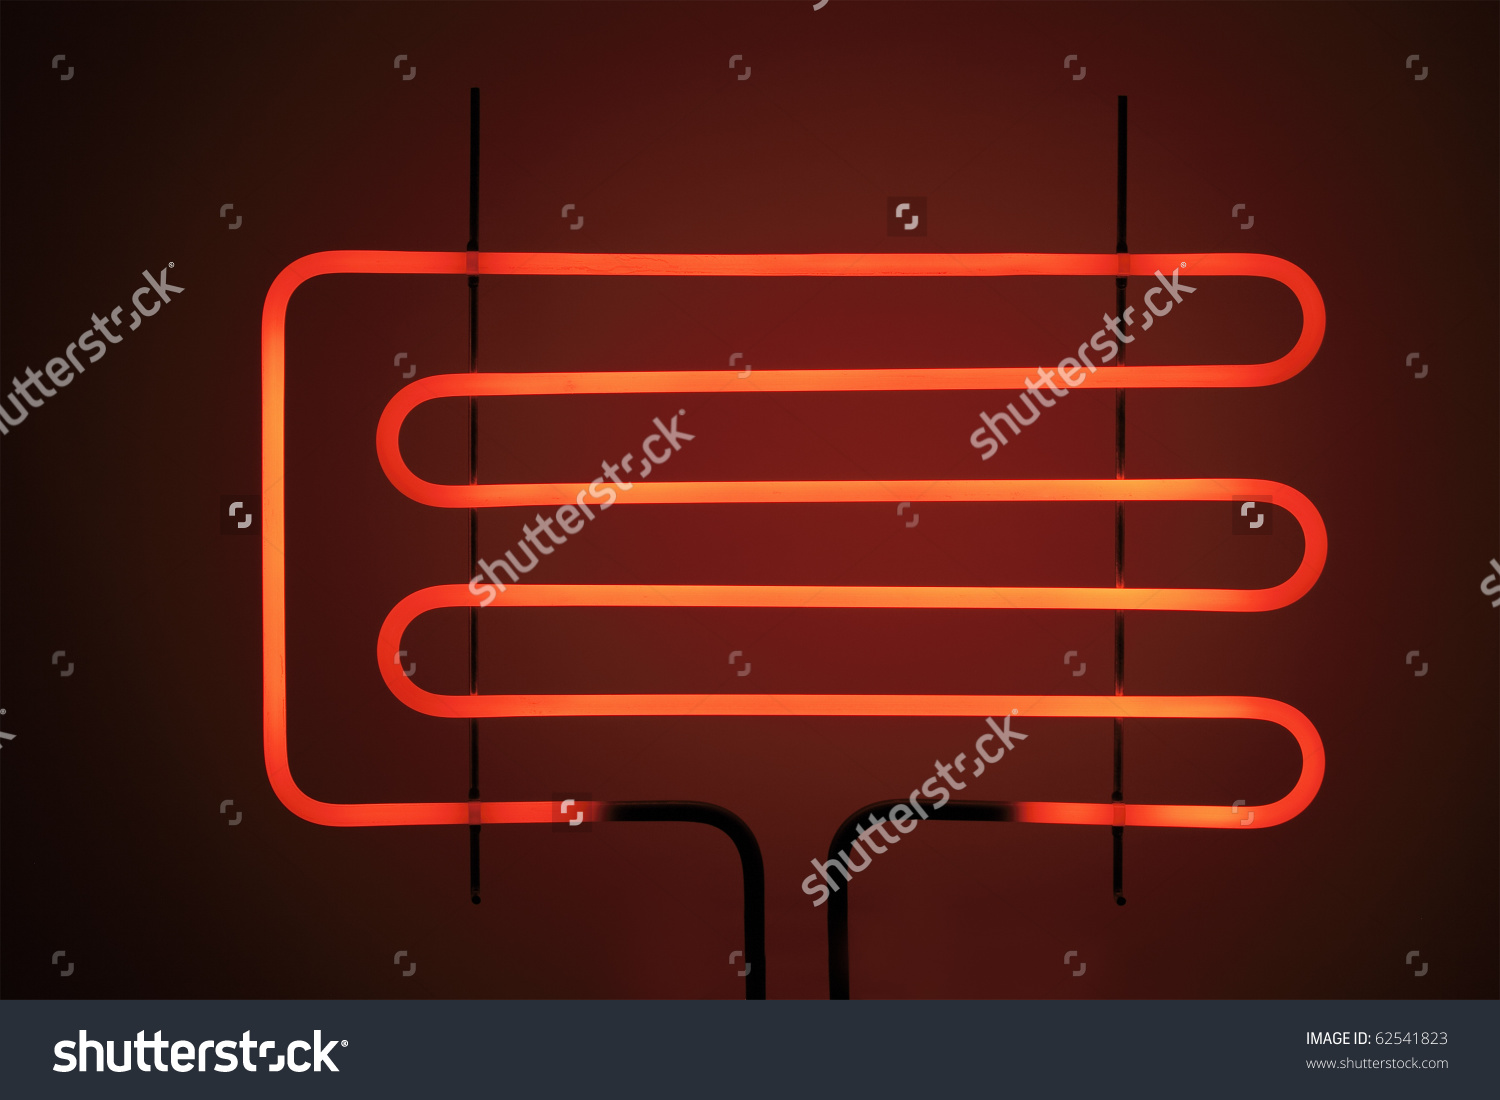 Heating Element Small Electrig Barbeque Grill Stock Photo 62541823.